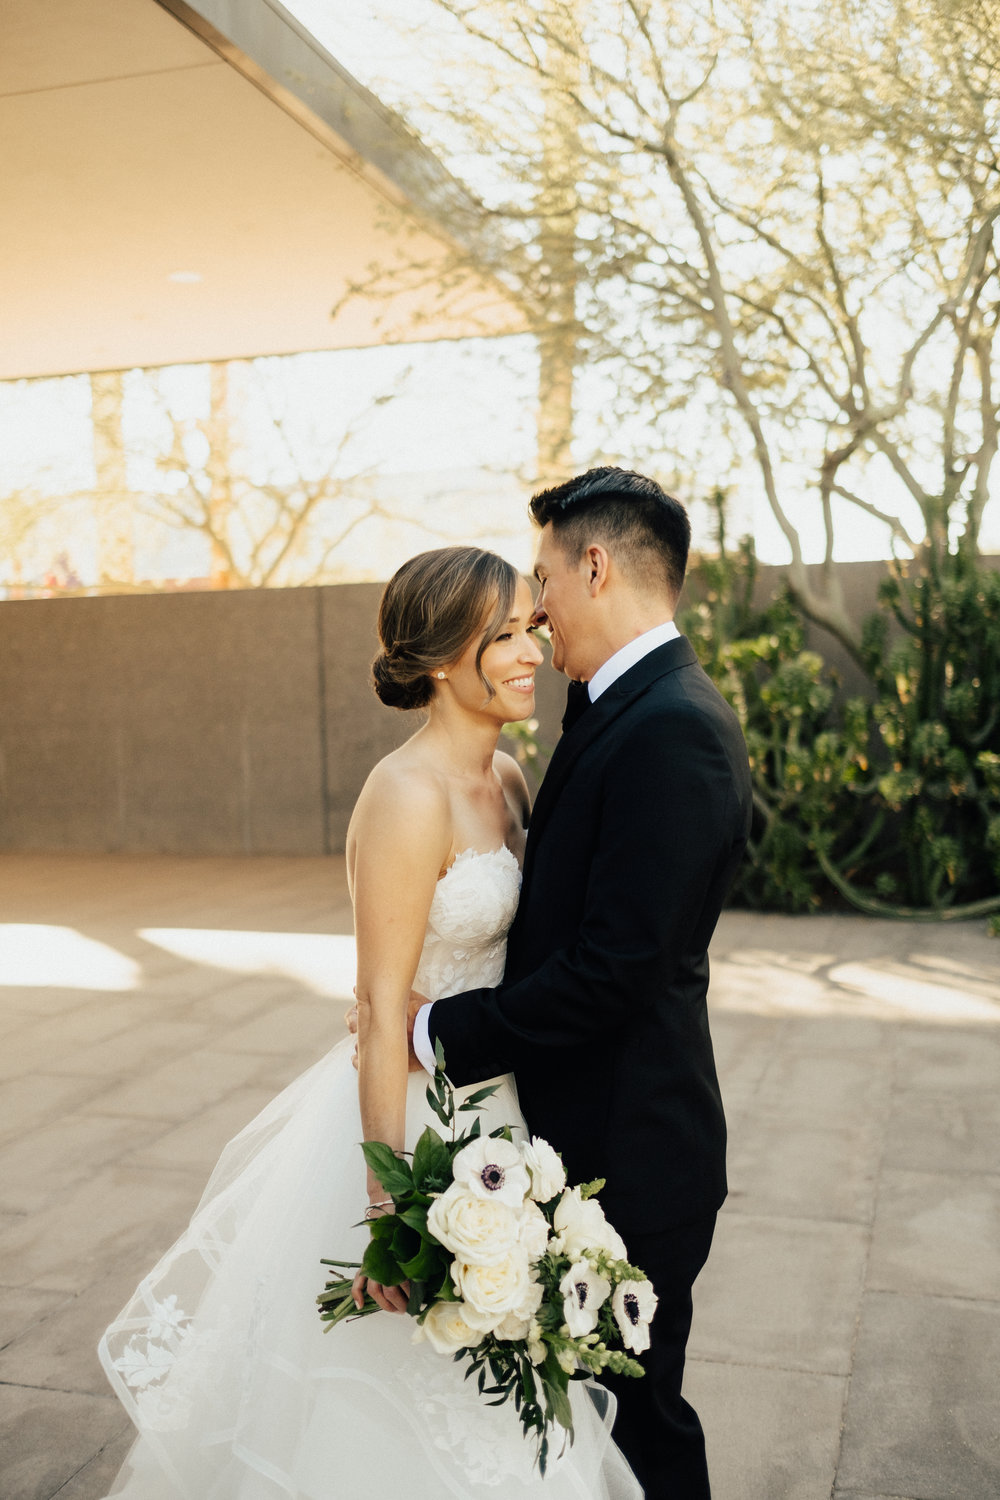 Chic art museum wedding